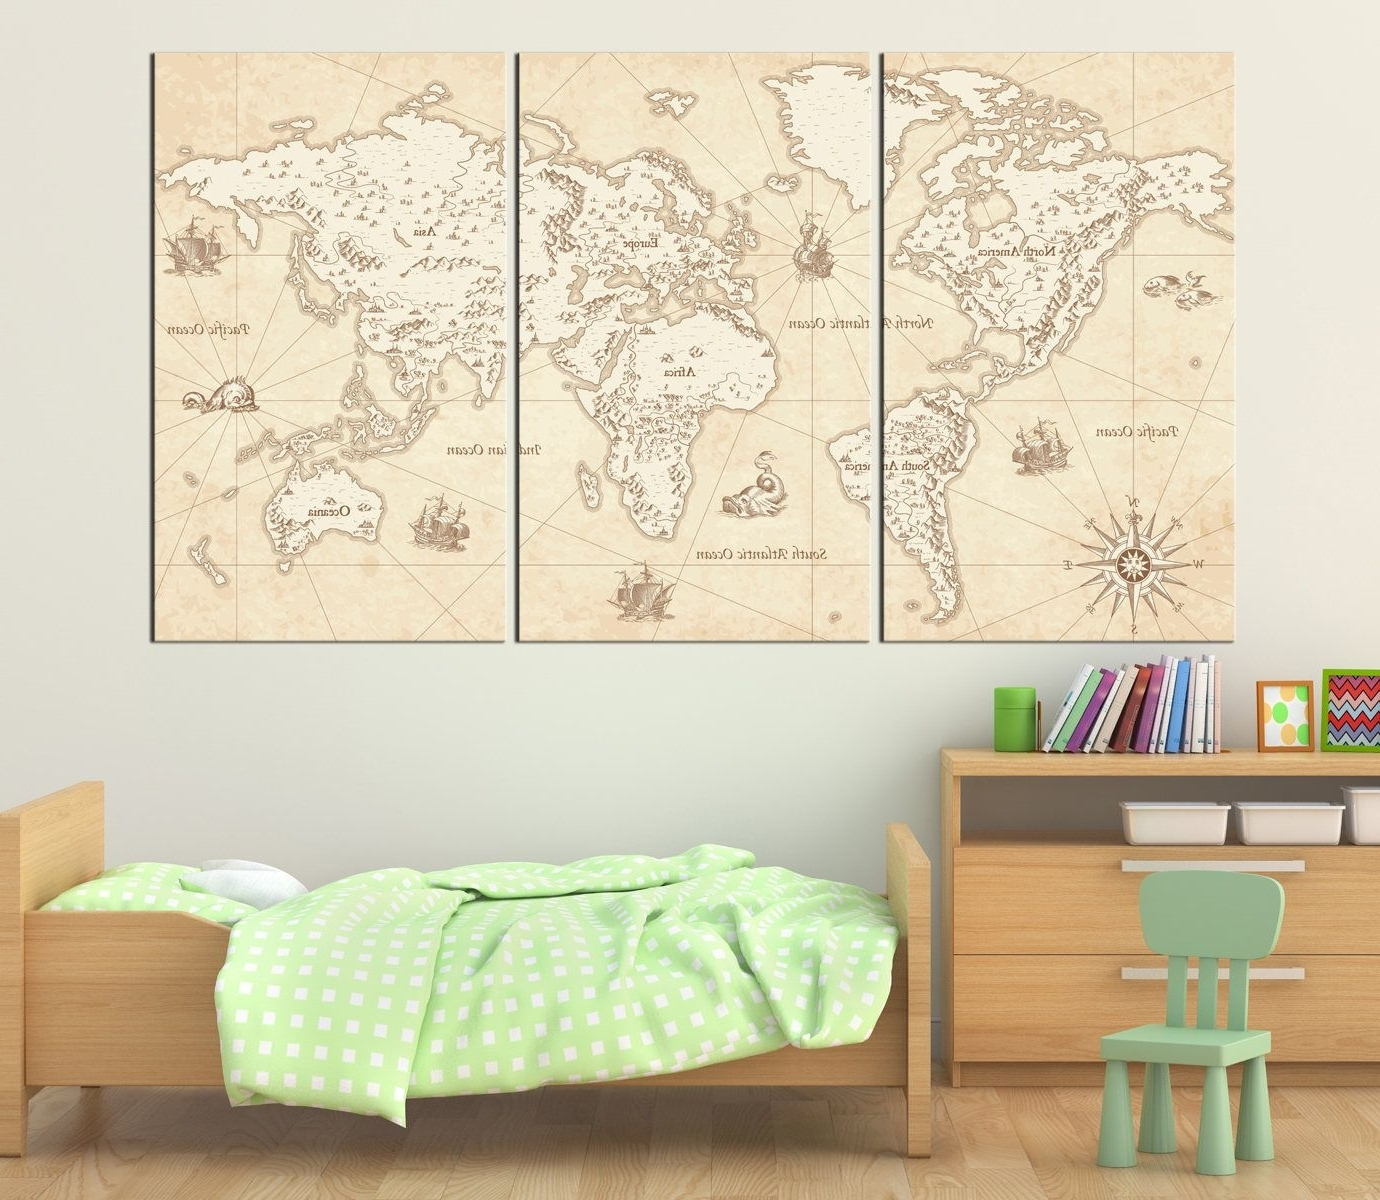 Vintage Illustrated World Map With Decorative Elements Canvas Print for Most Popular Map Wall Art Prints